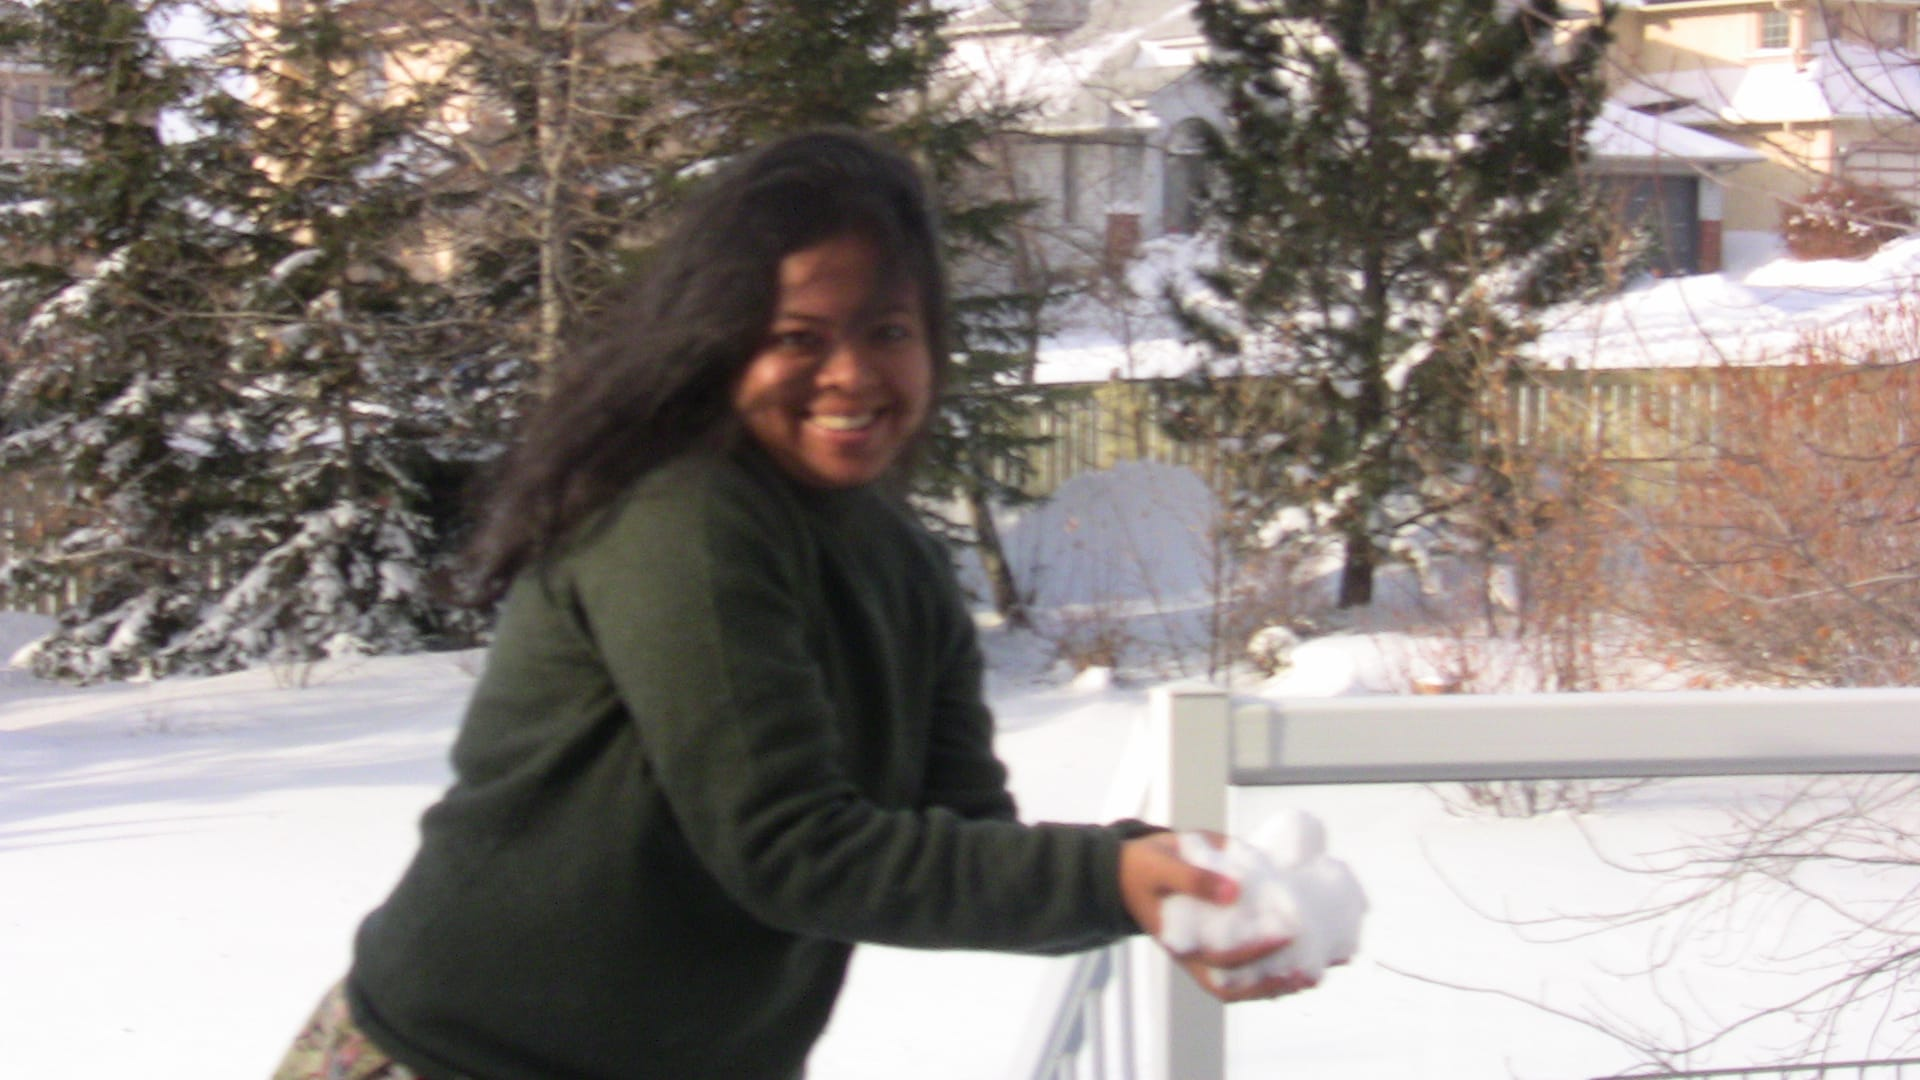 Anandita brought the First Snow to Calgary - and Smiling..